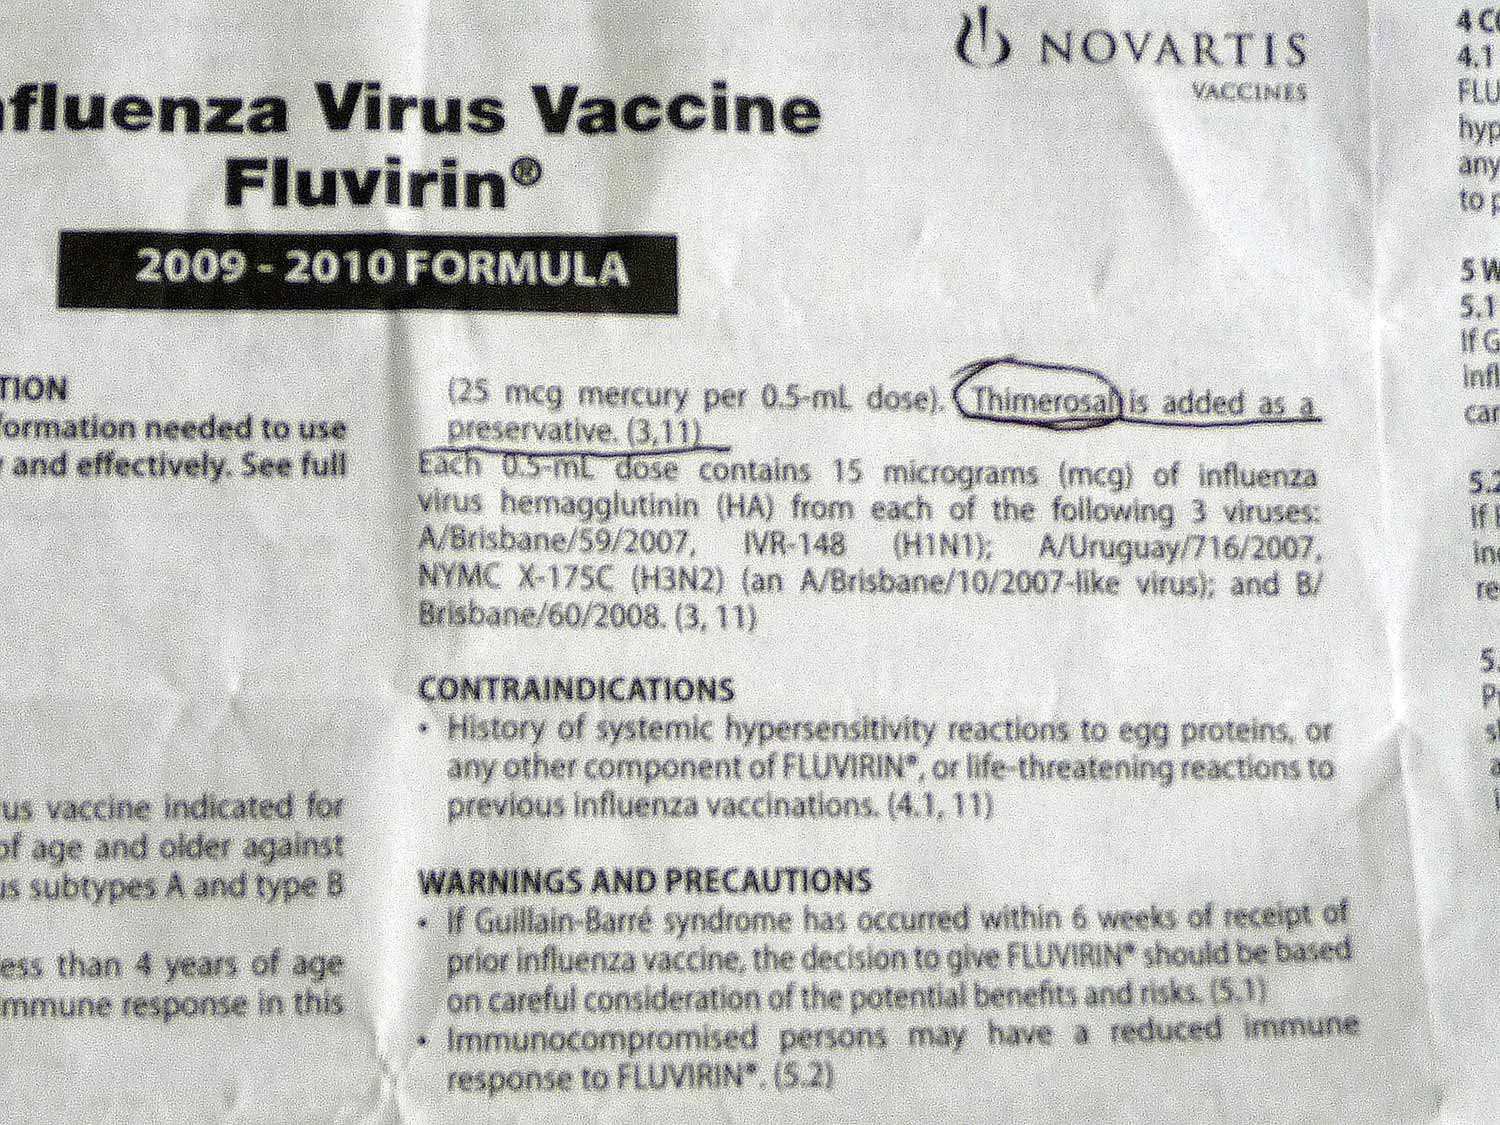 list of flu shot ingredients including harmful thimerosal